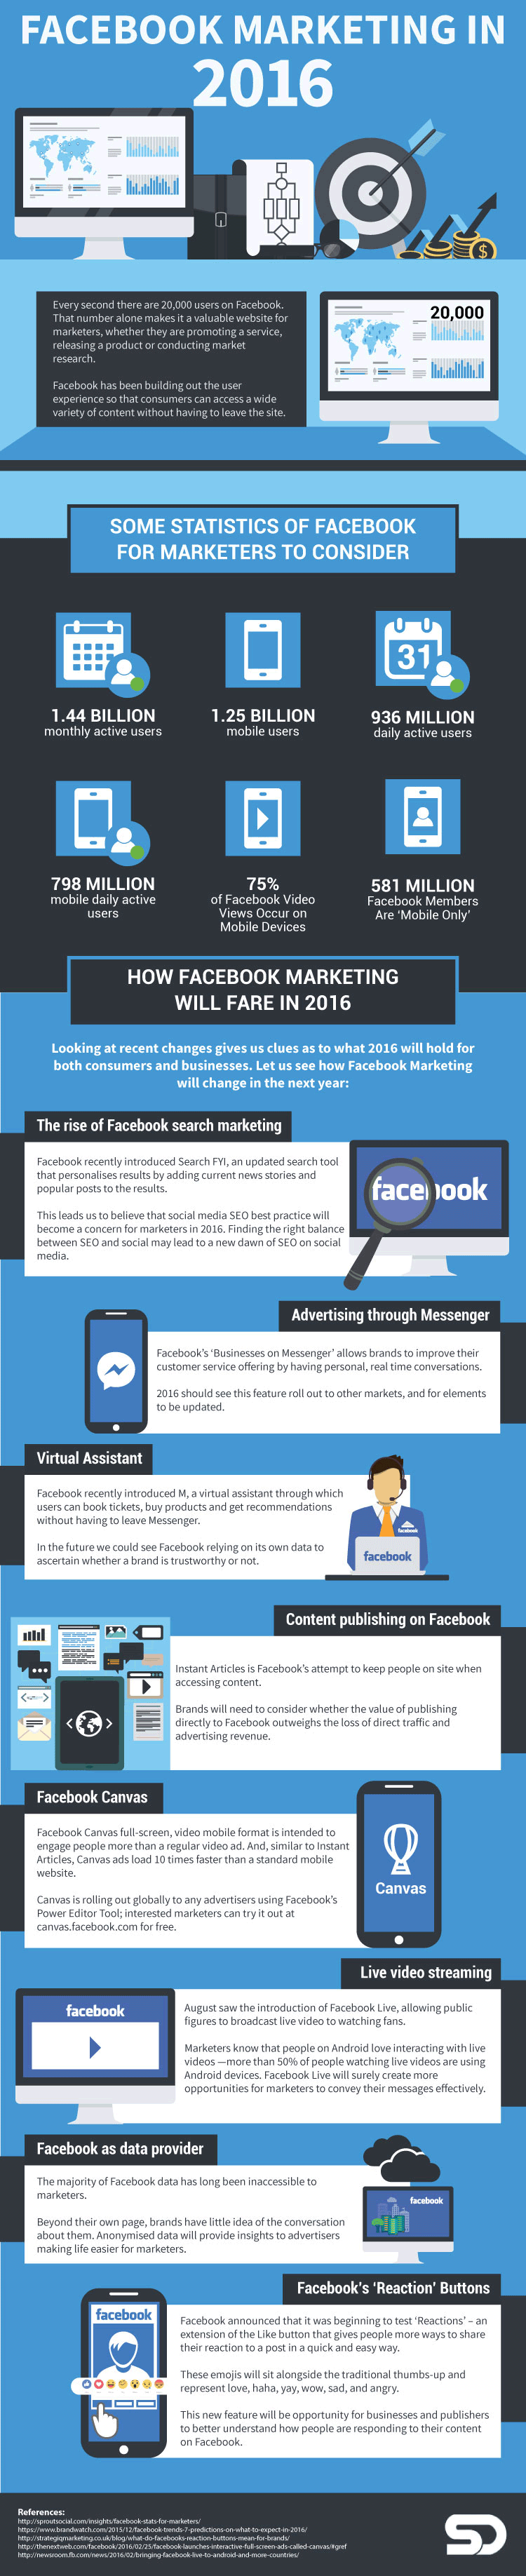 Wondering what's up with Facebook marketing in 2016? Learn what's happening now, and what to expect in the future, in this infographic. Visit the blog for more!